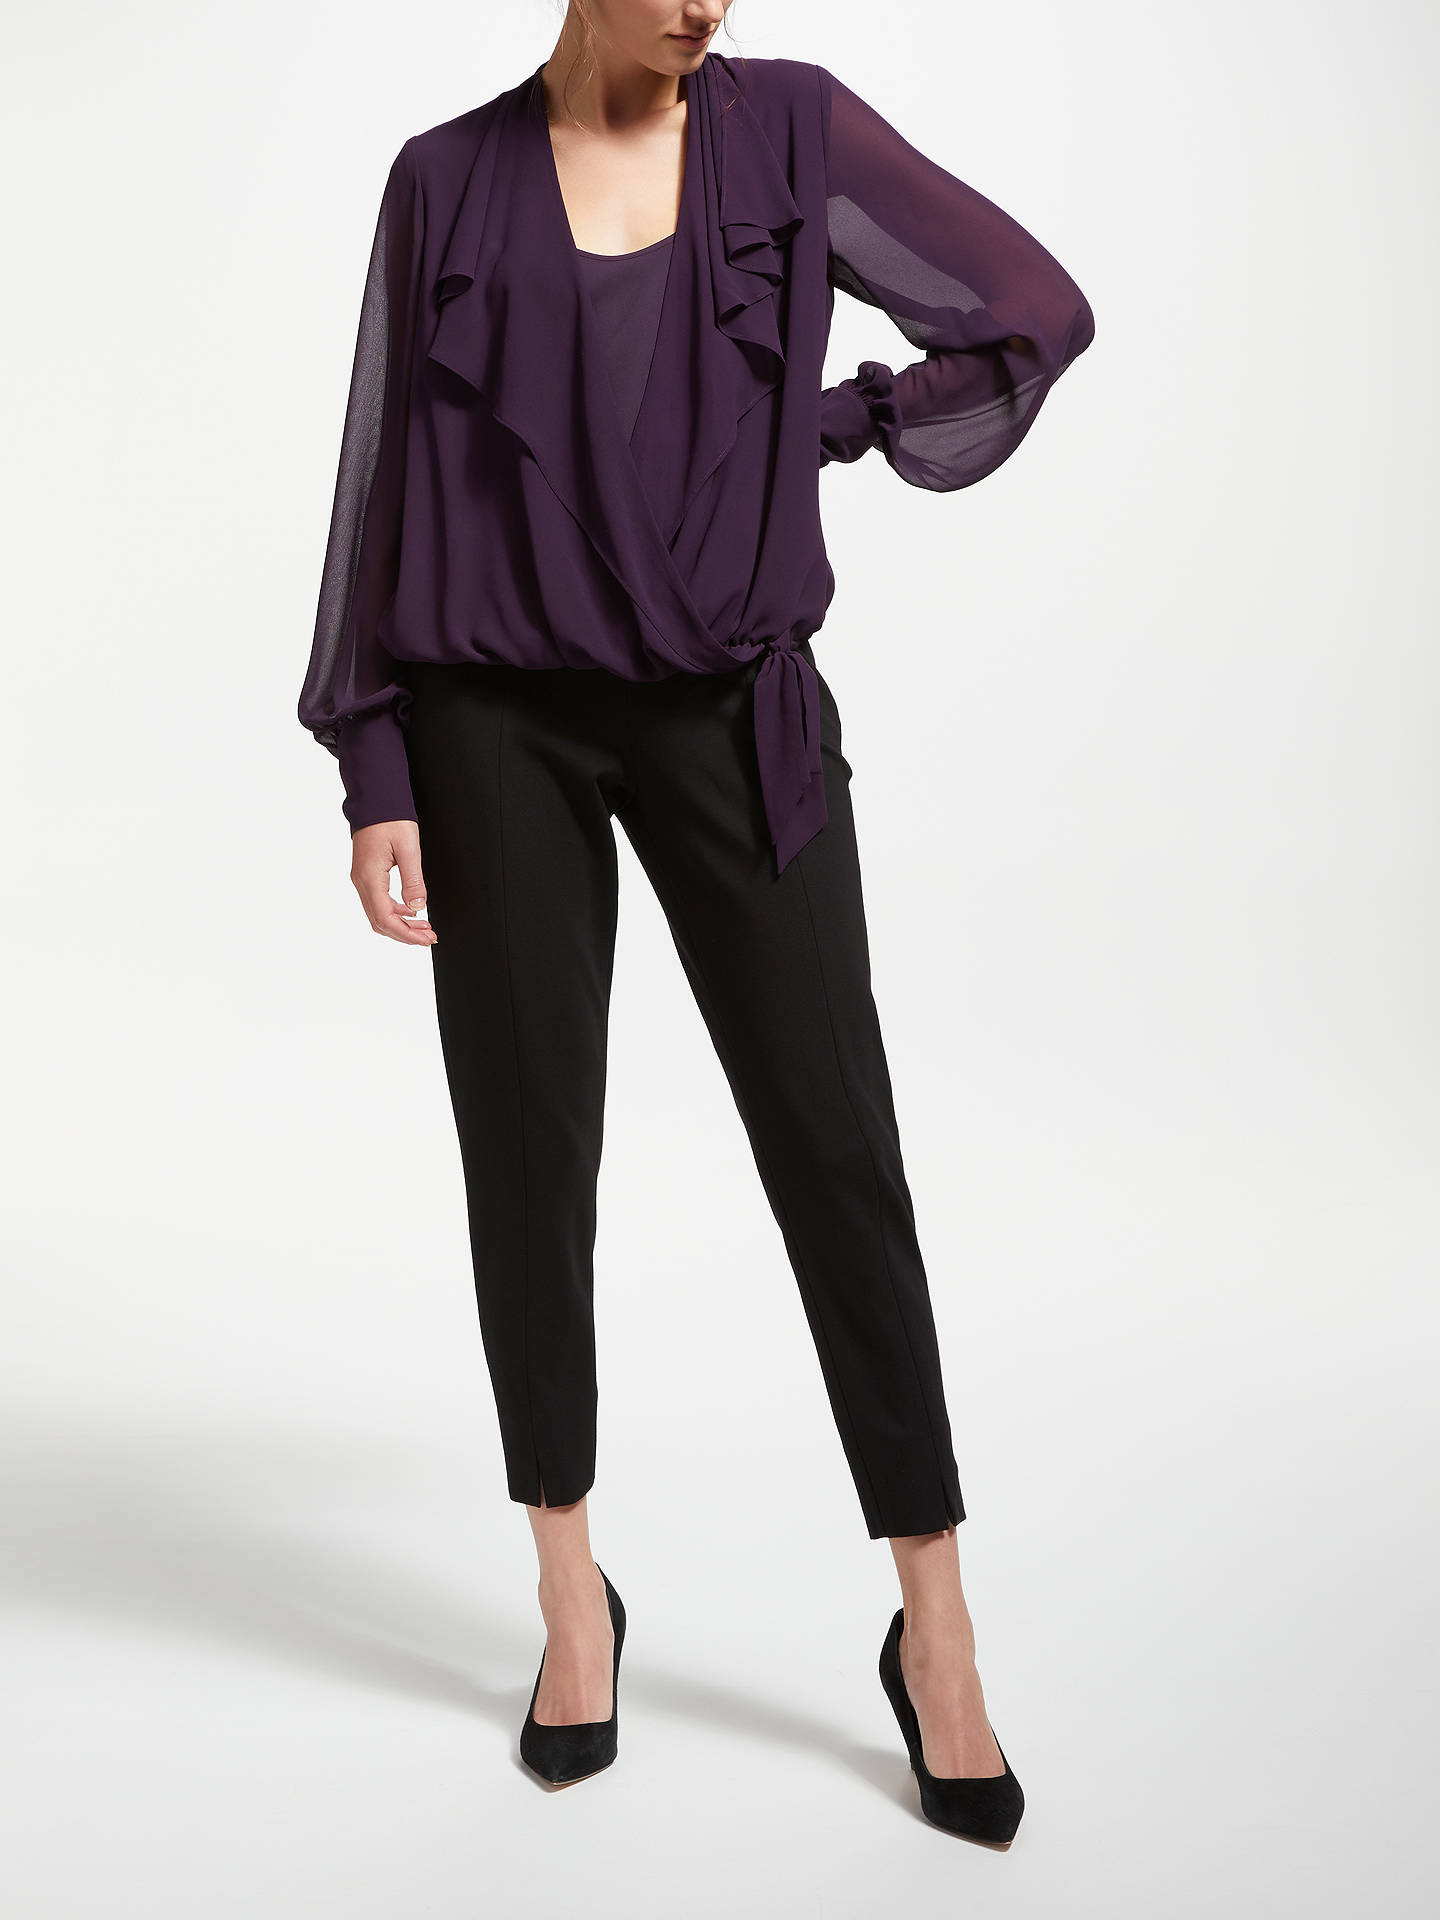 BuyBruce by Bruce Oldfield Wrap Over Tie Waist Blouse, Wine Tasting, 12 Online at johnlewis.com